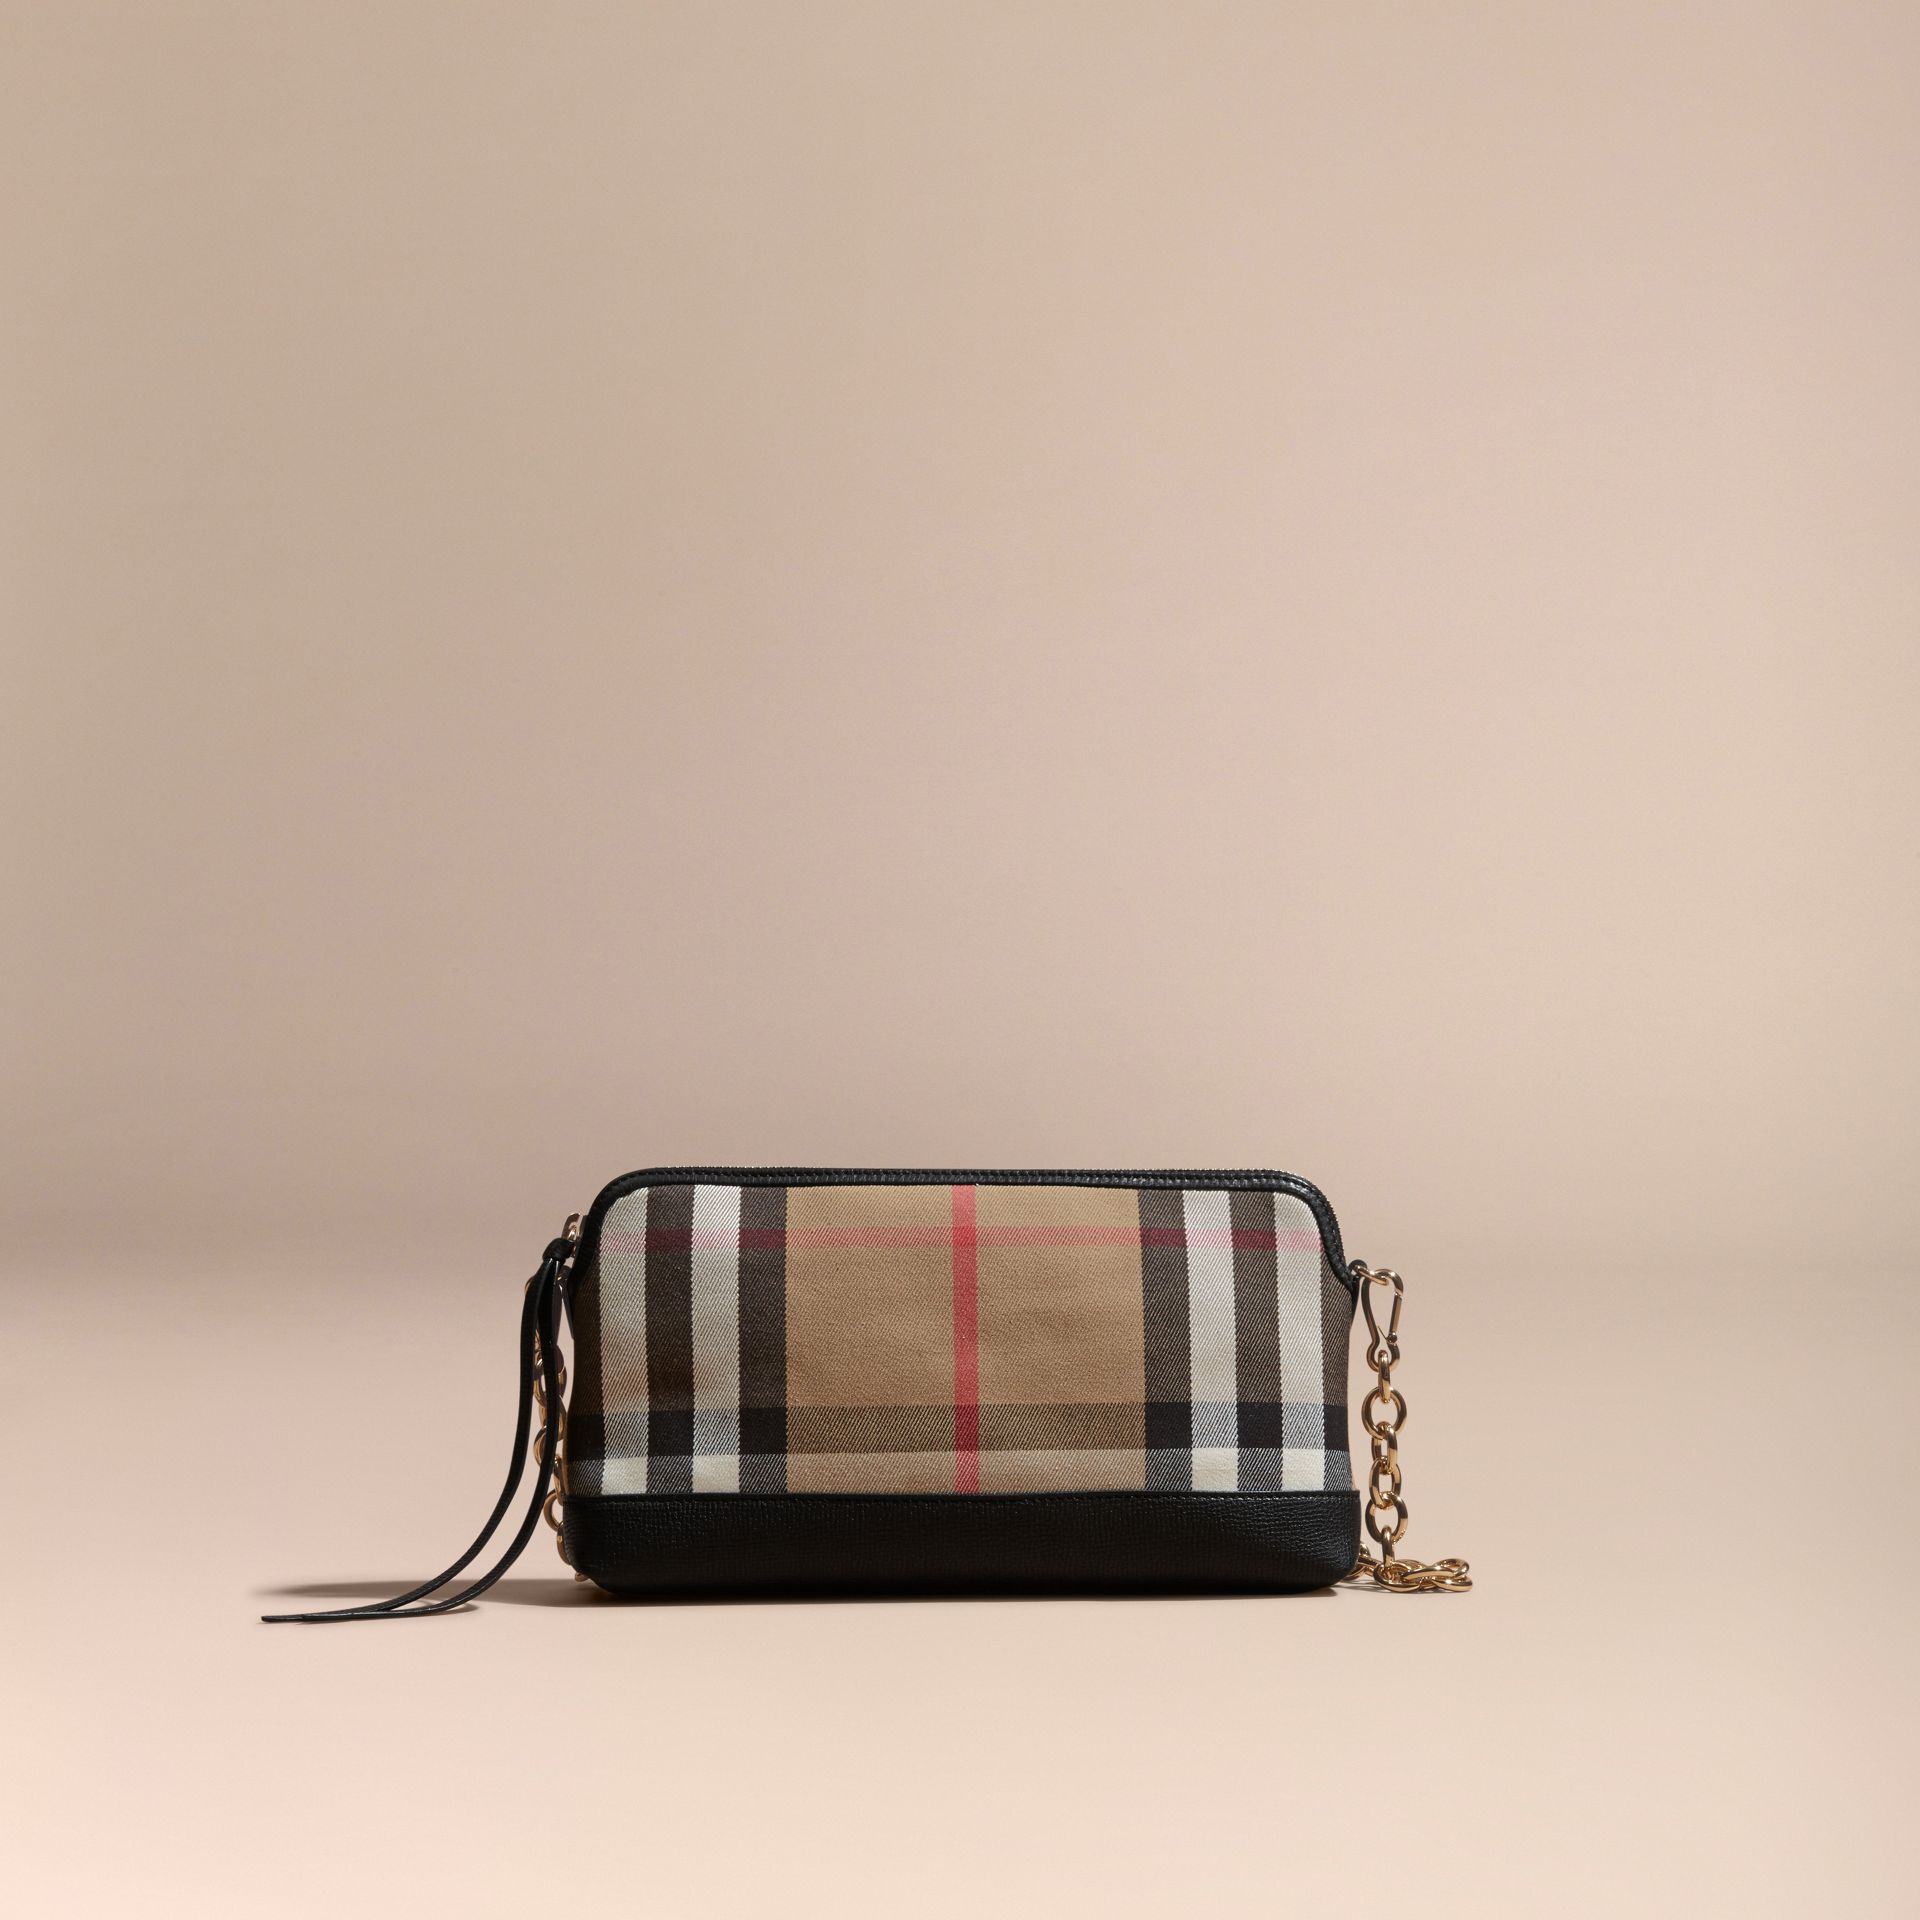 House Check and Leather Clutch Bag Black - gallery image 9